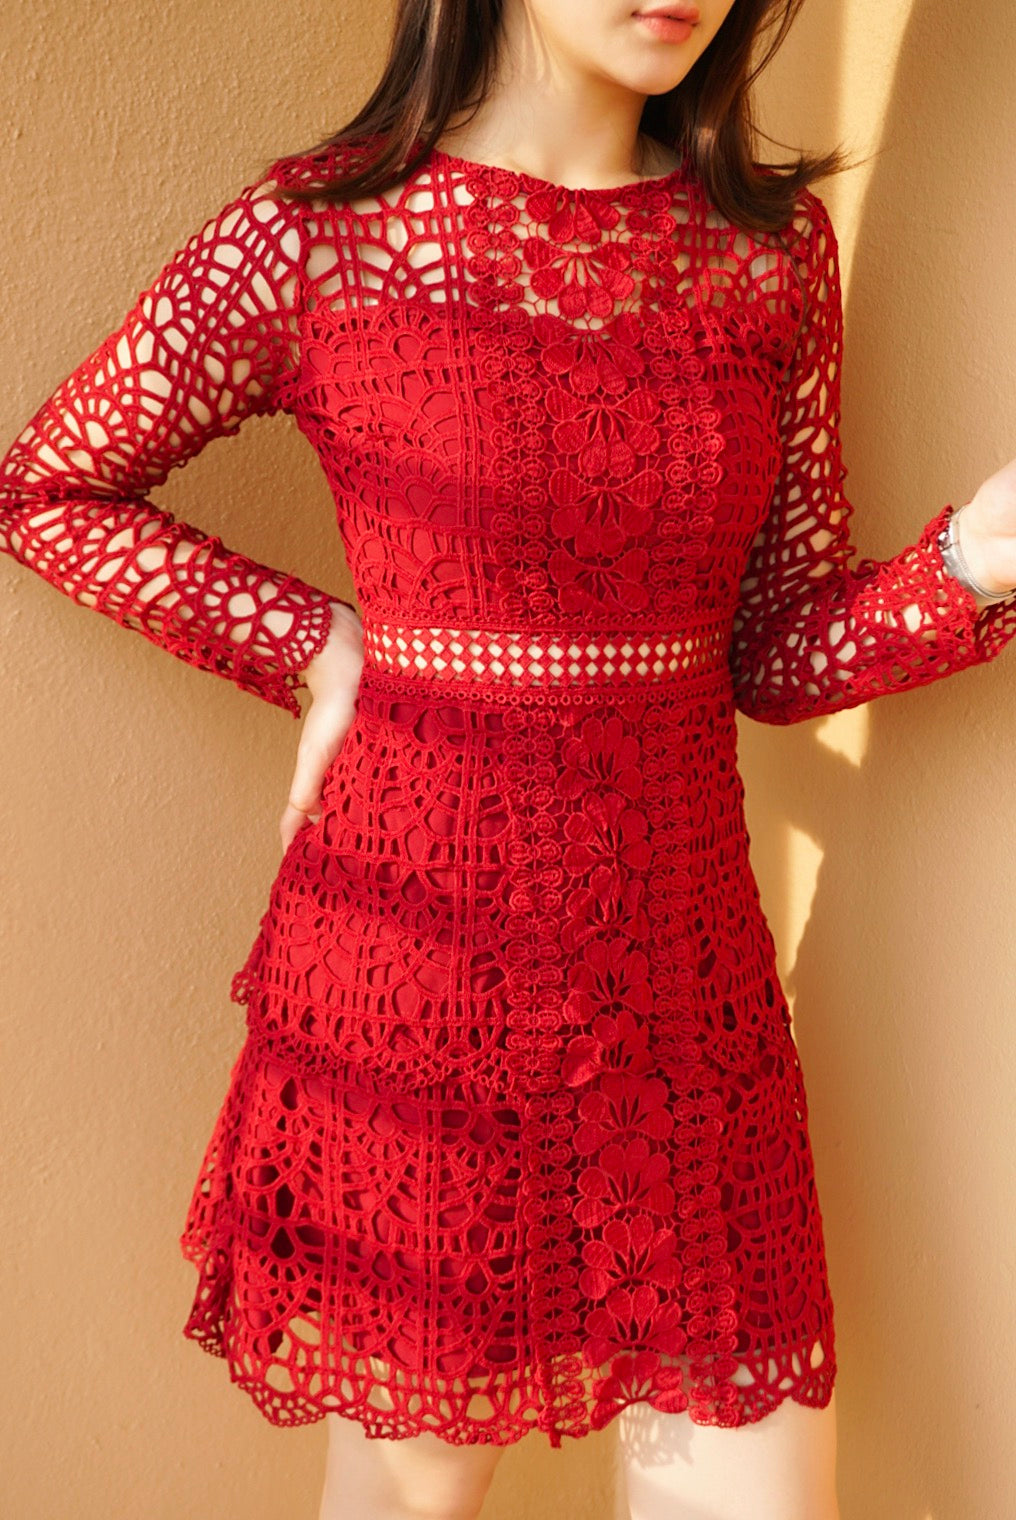 *LAST PIECE* Hosk Floral Lace Red Dress